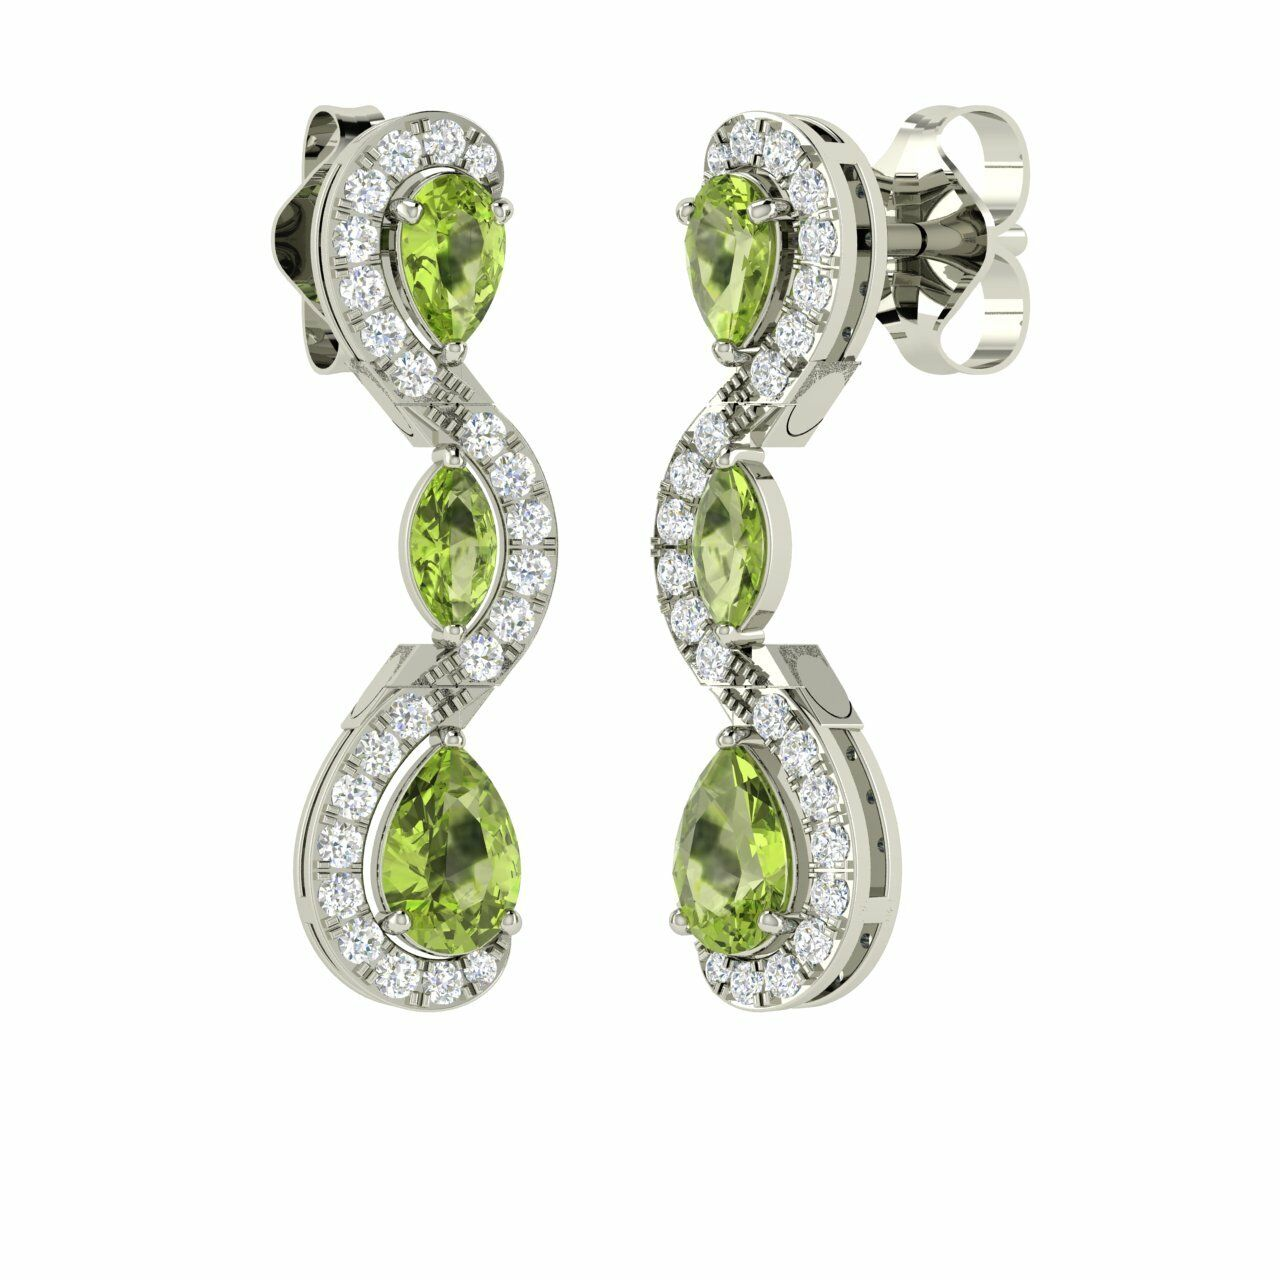 Certified 2.06 Cts Real G SI Diamond & Peridot 14k White gold Dangle Earrings